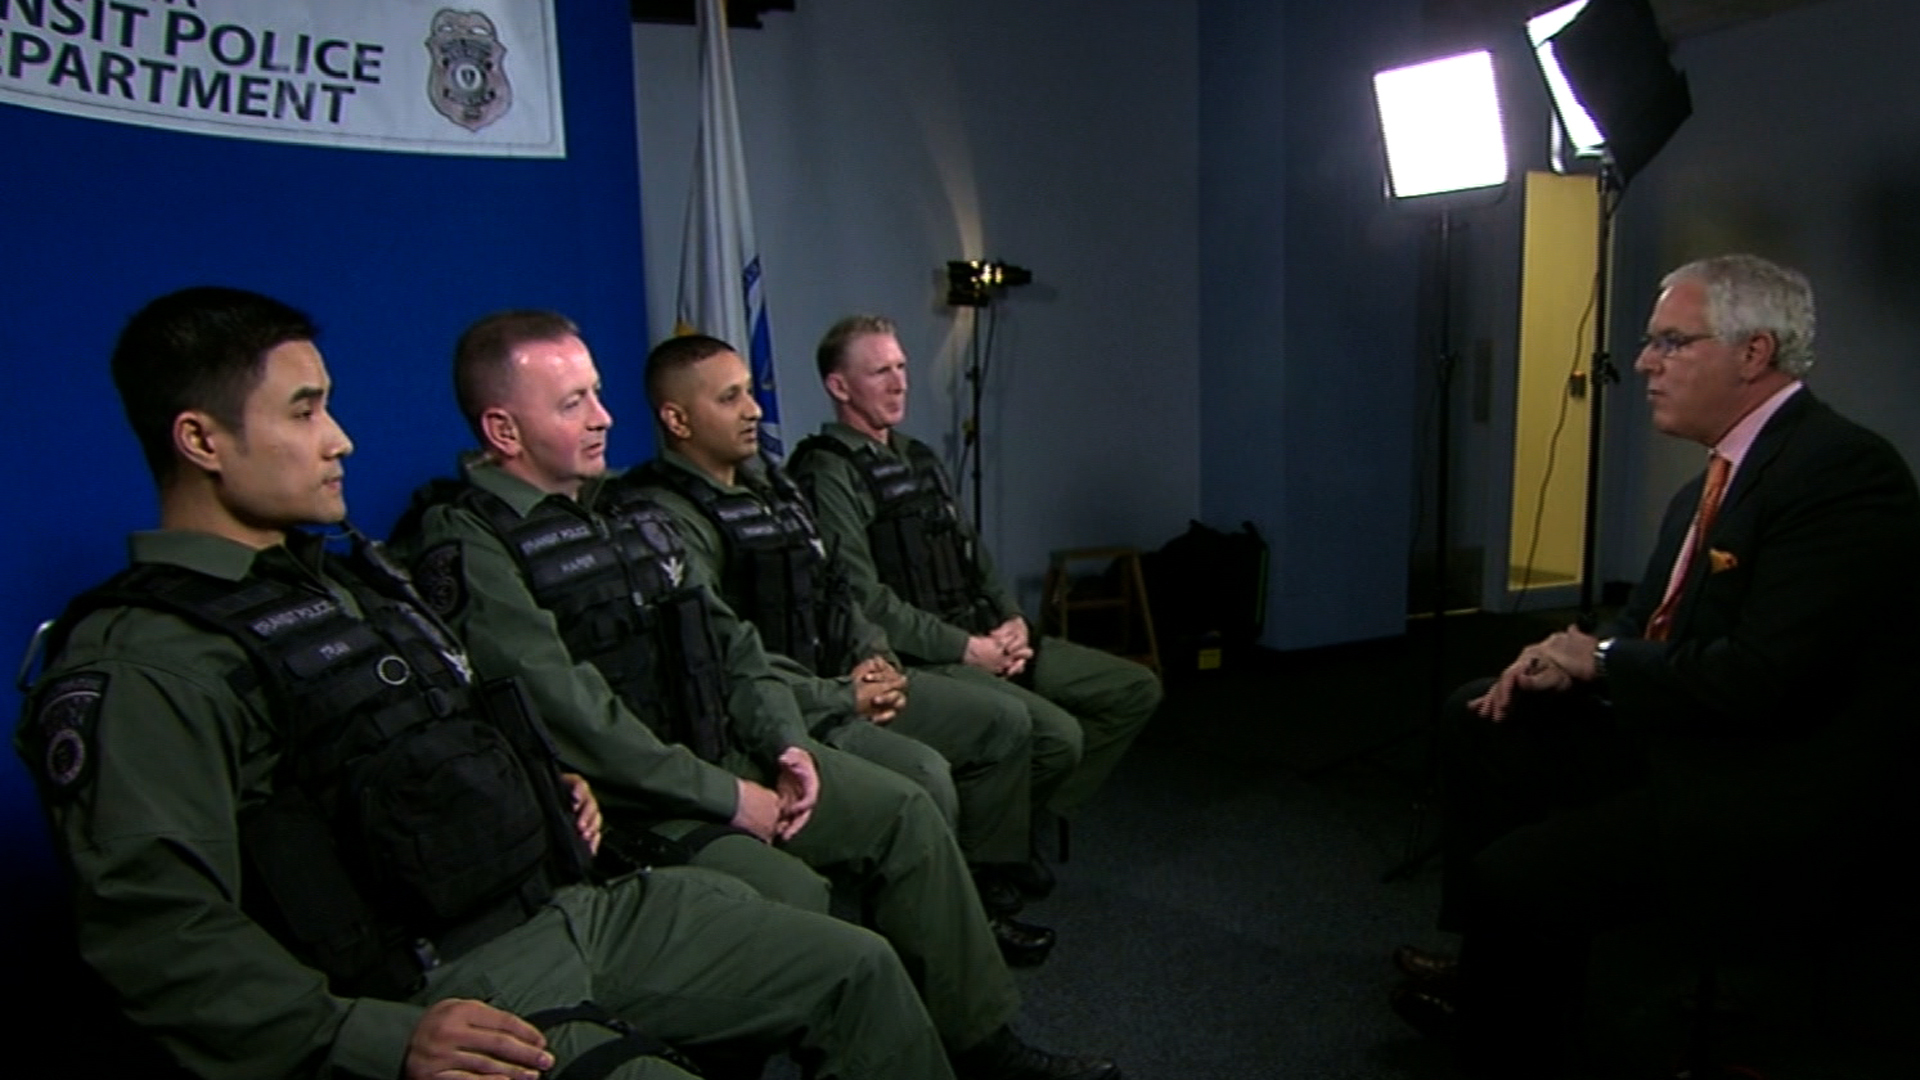 Boston Swat Team We Wanted To End This Cbs News